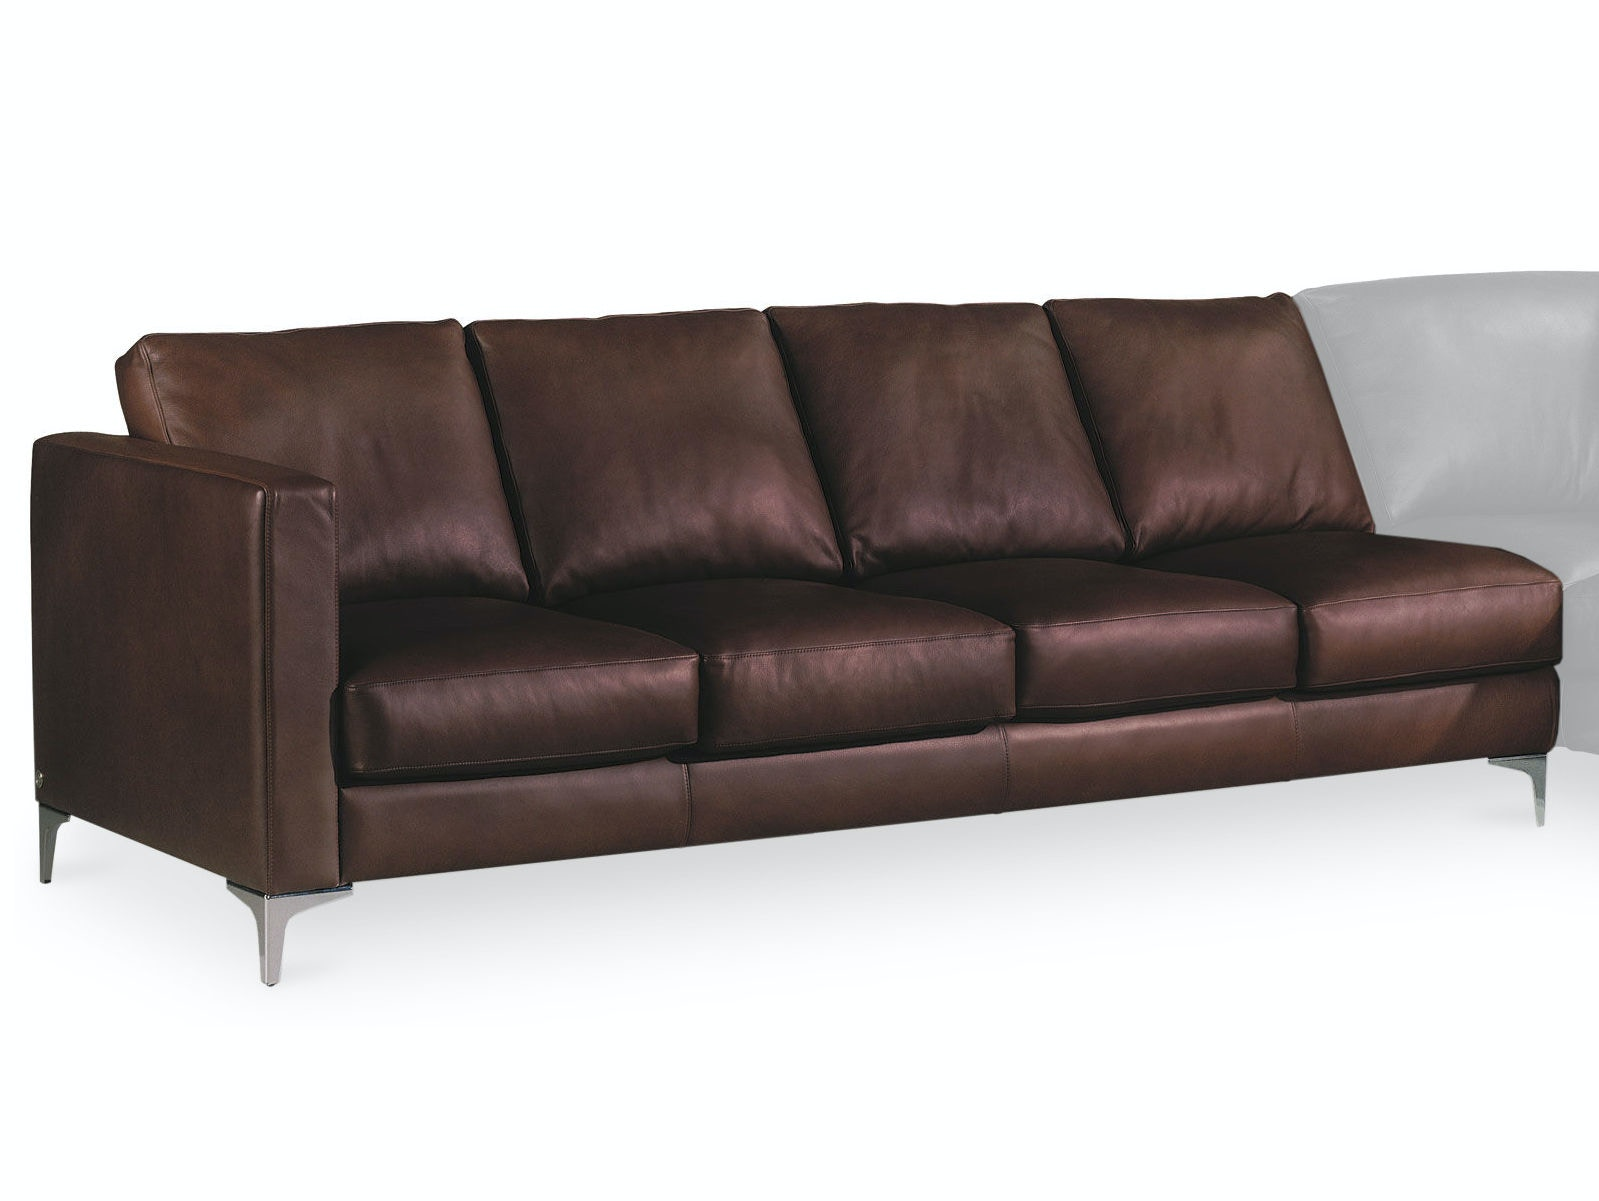 Merveilleux American Leather Right Arm Four Cushion Sofa AMLKNDSO4RA From Walter E.  Smithe Furniture + Design